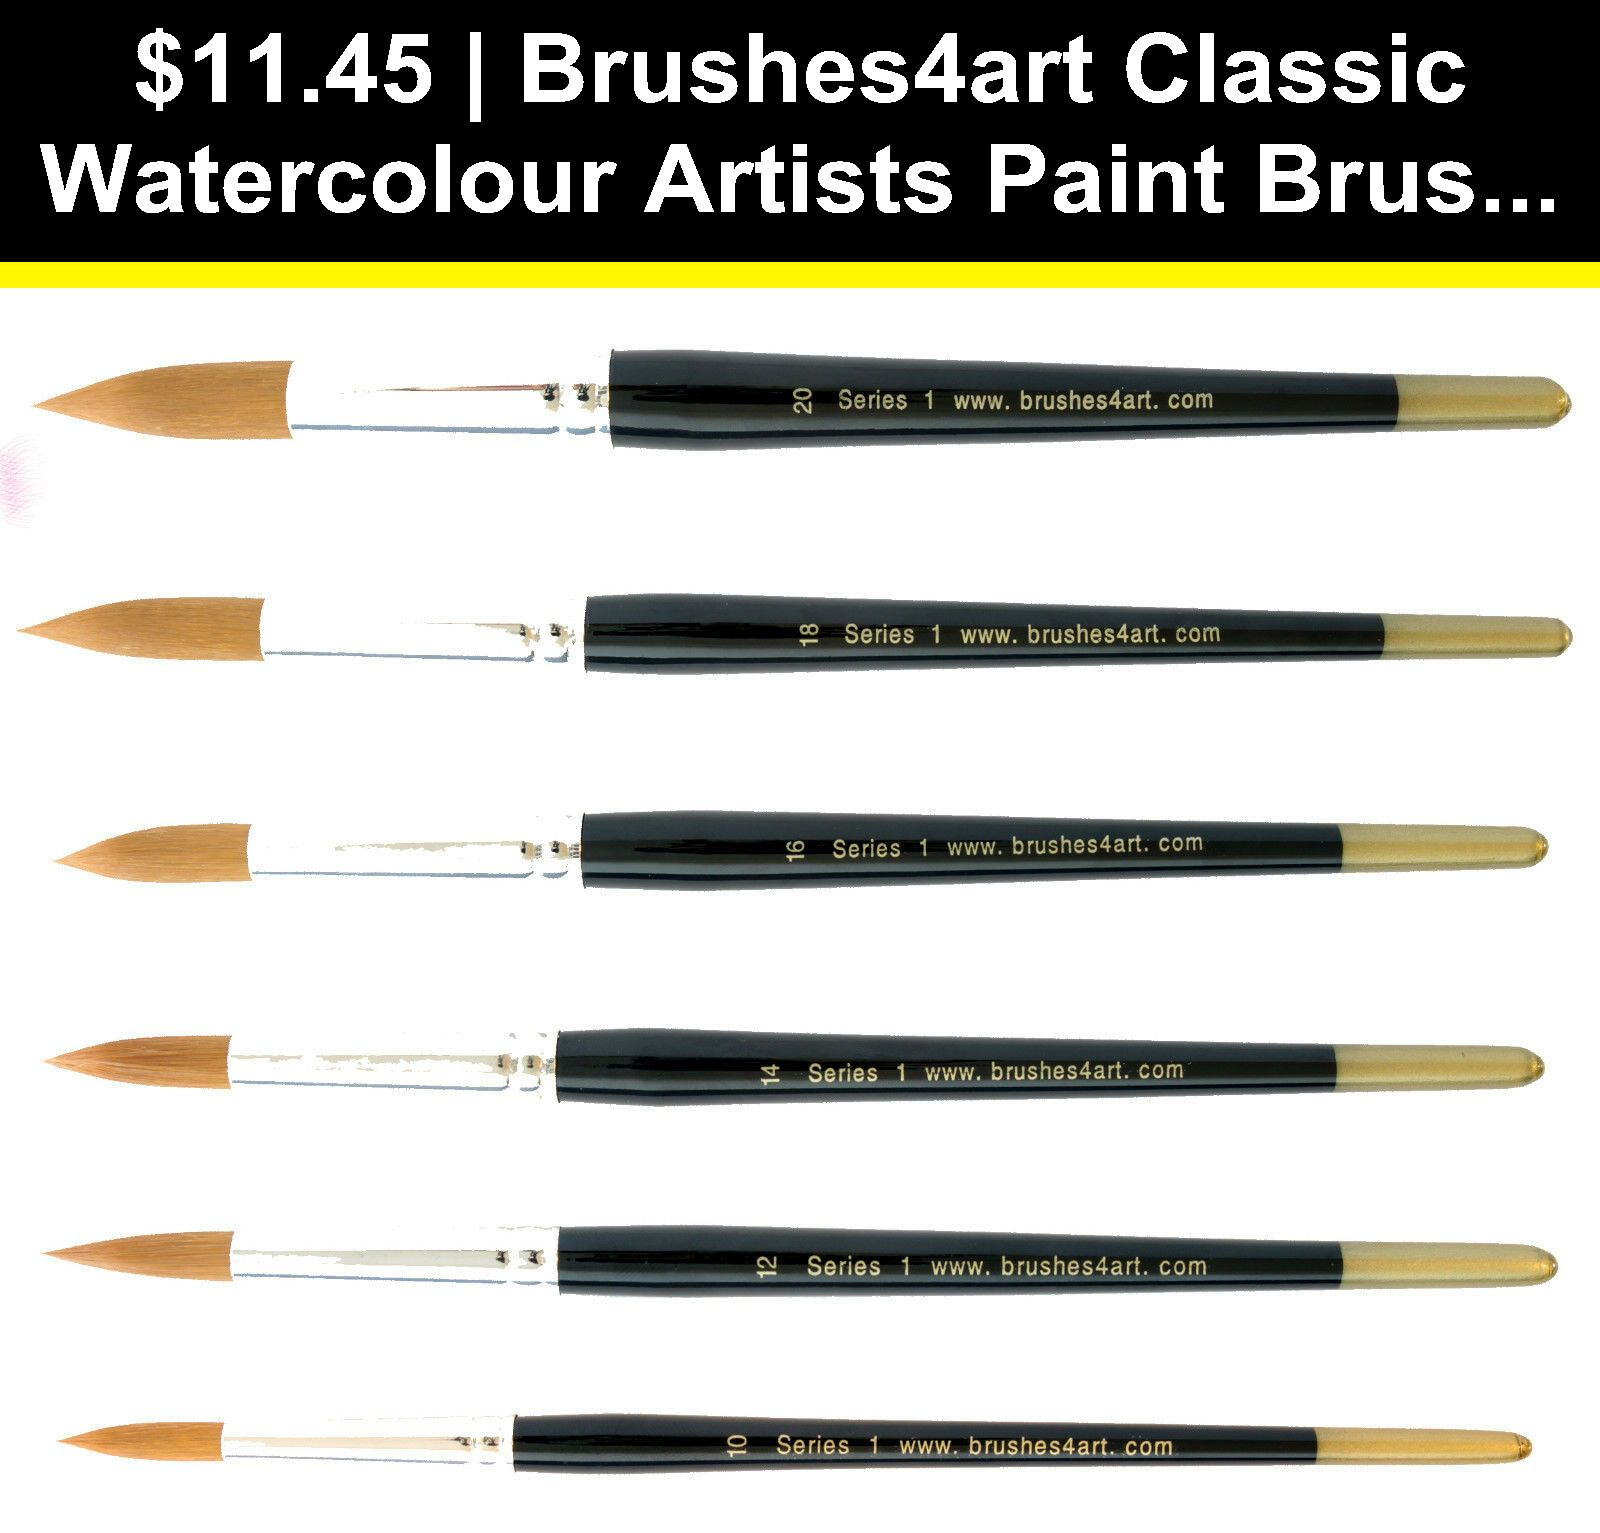 Artists Brushes 57209 Brushes4art Classic Watercolour Artists